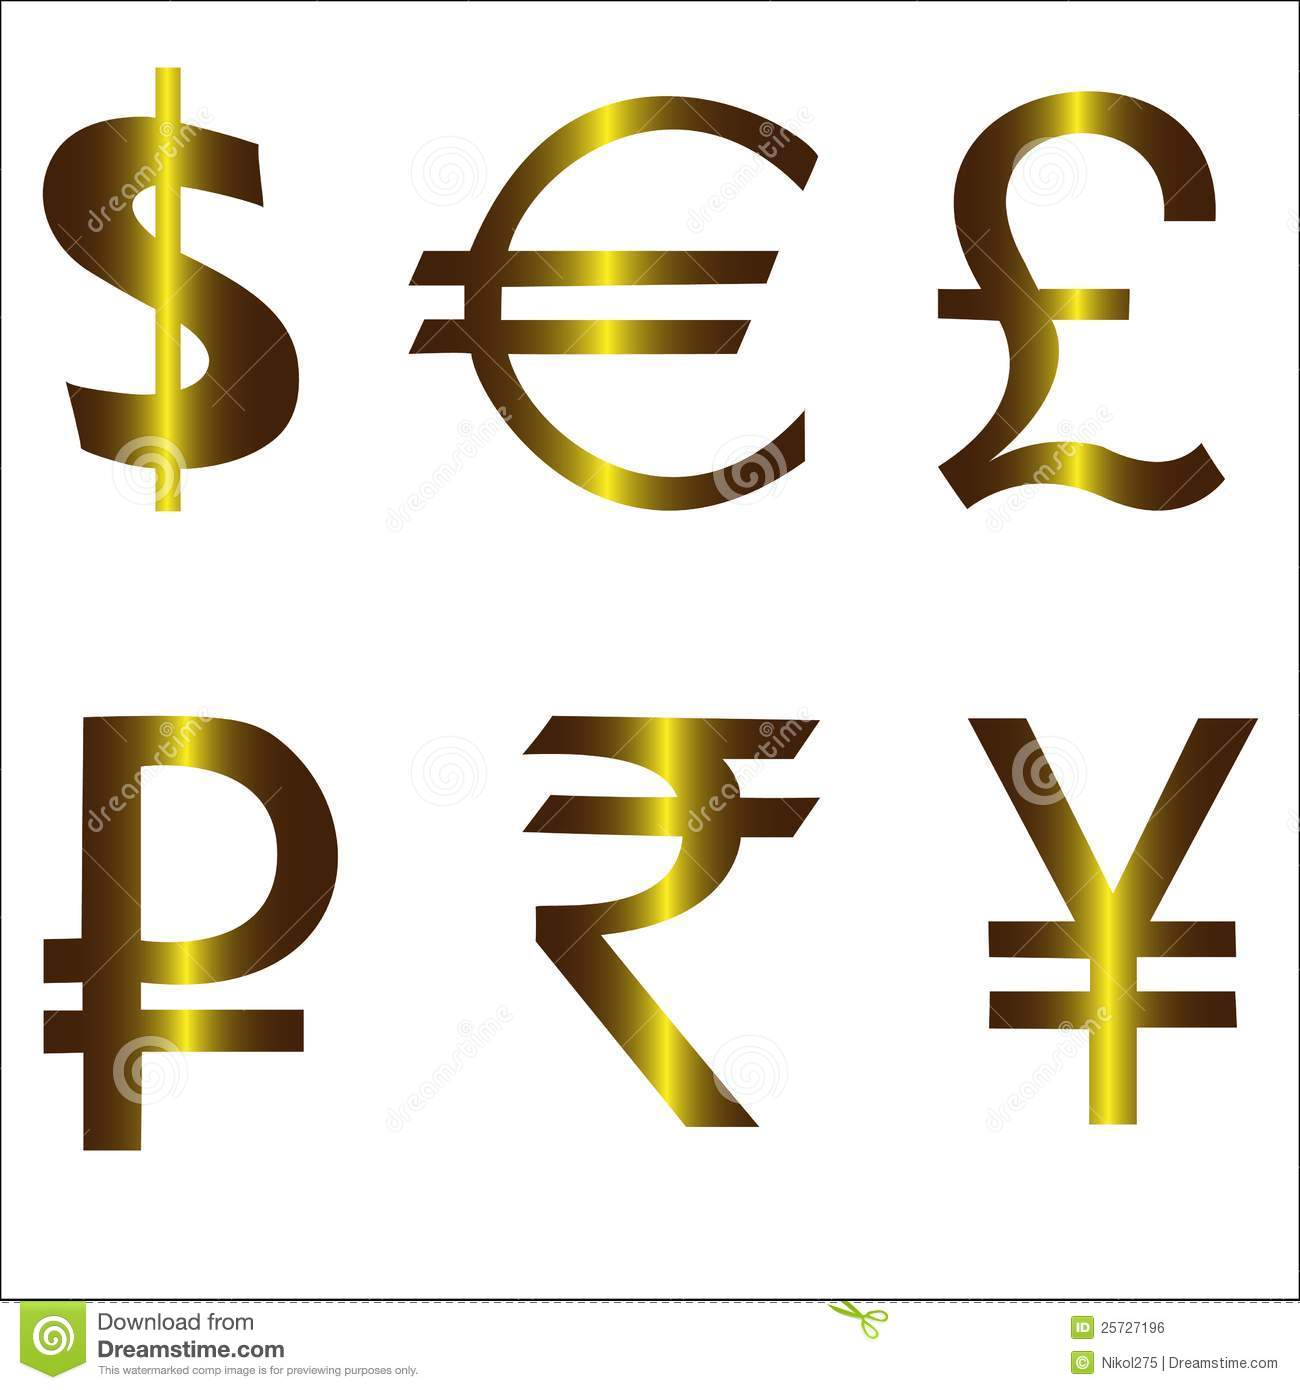 Pound dollar euro ruble yen yuan